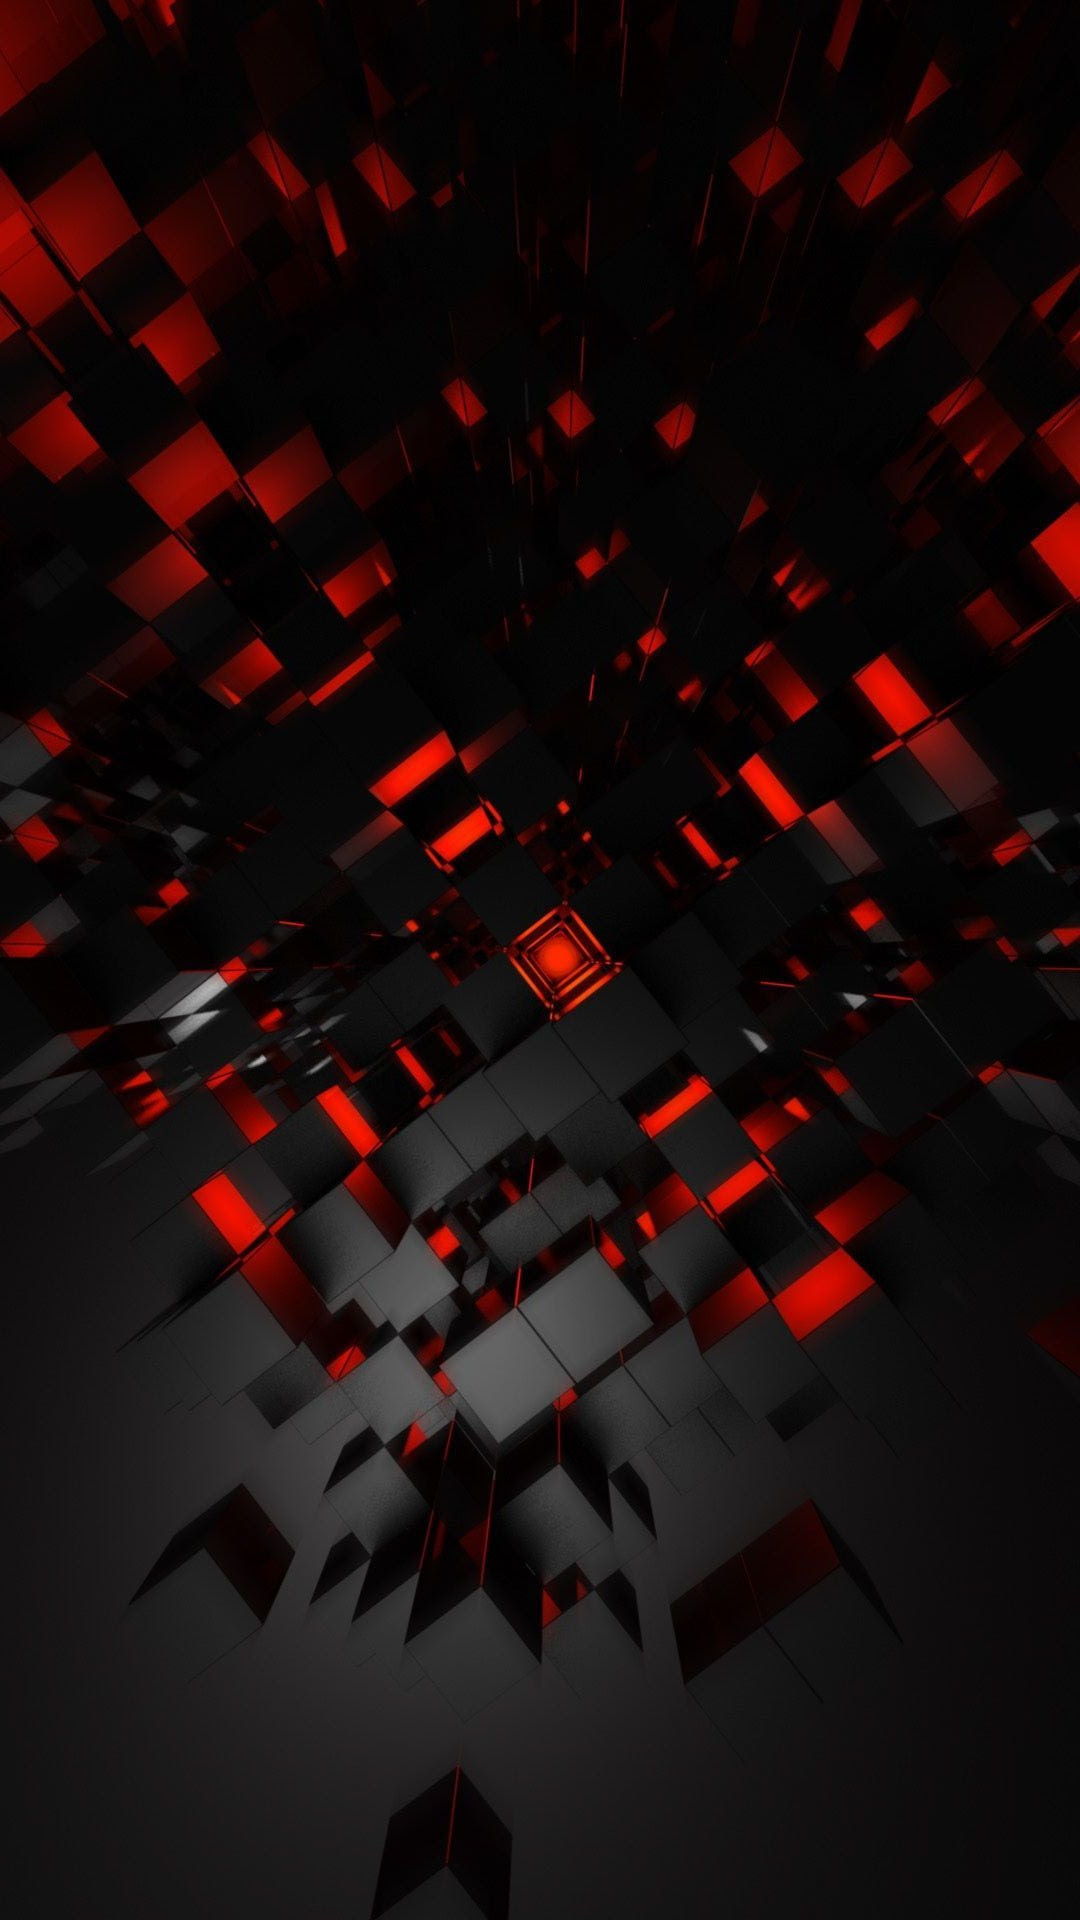 Dark Red and Black Abstract Backgrounds HD